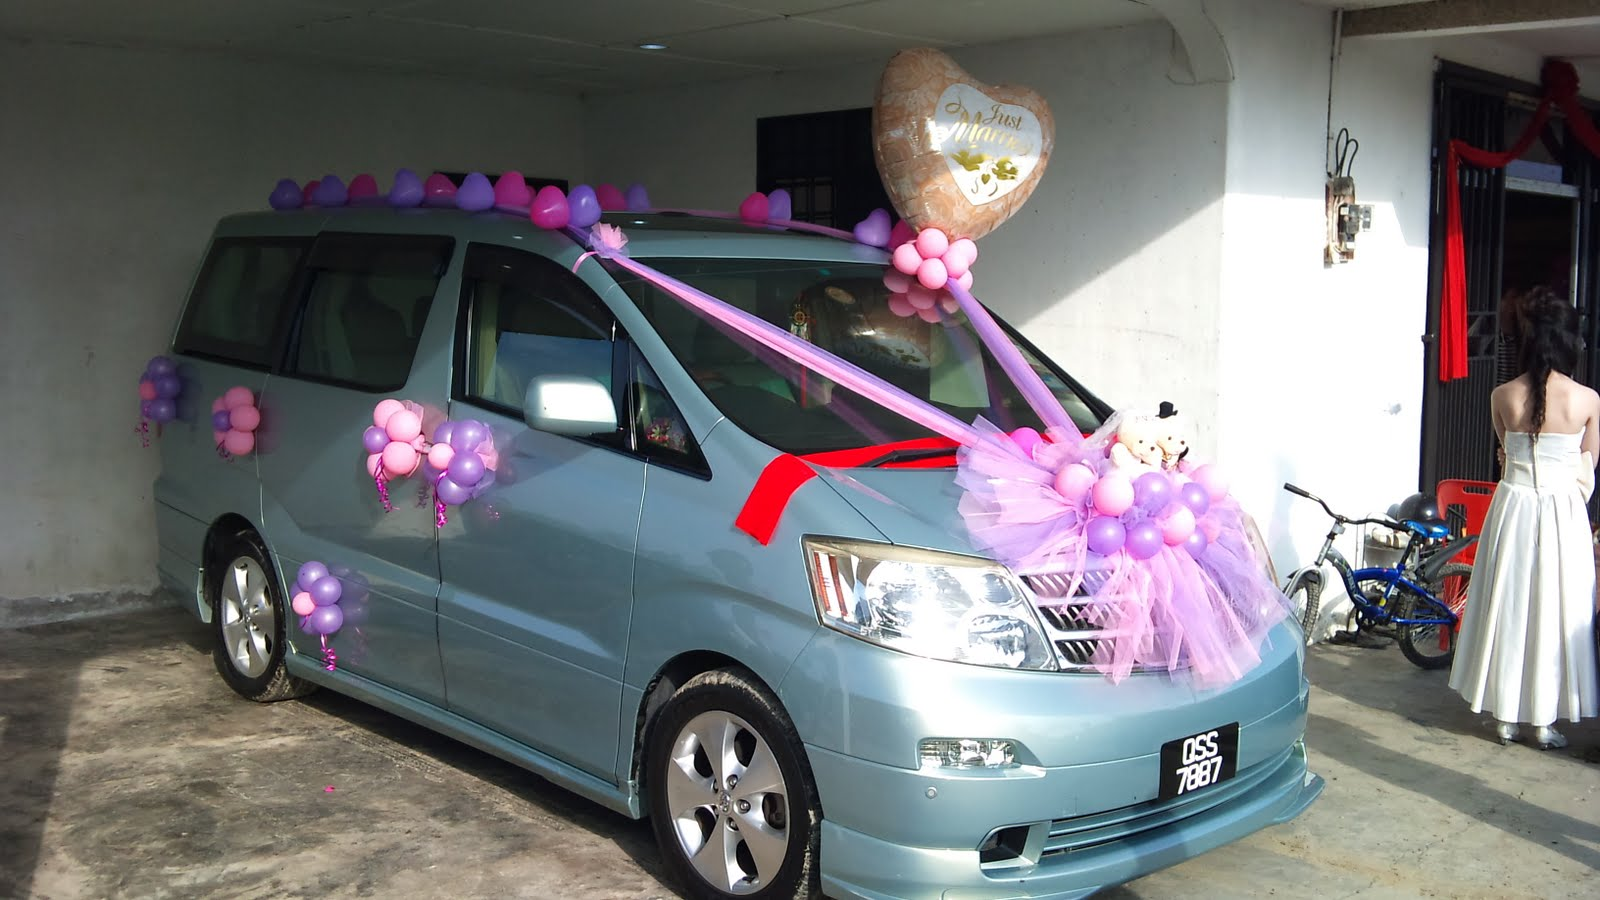 Balloon decorations for weddings birthday parties balloon sculptures in Kuching and Miri